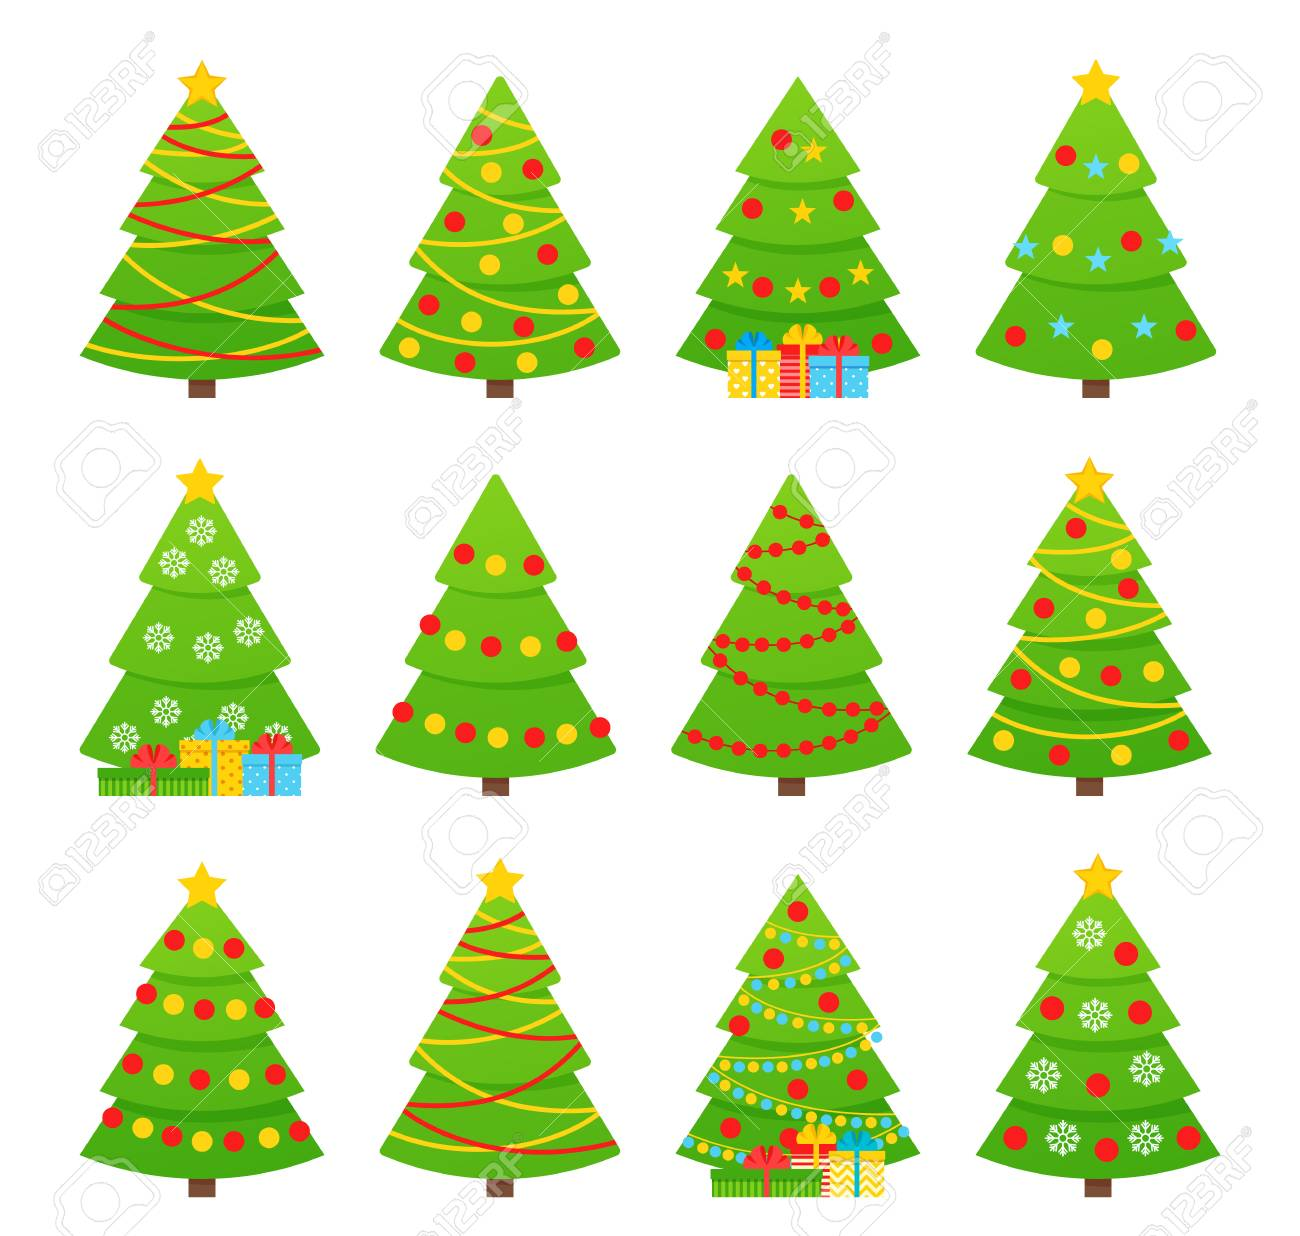 Christmas Tree Vector Tree Icon In Flat Design Xmas Cartoon Royalty Free Cliparts Vectors And Stock Illustration Image 127459241 All free download vector graphic image from category cartoon. christmas tree vector tree icon in flat design xmas cartoon